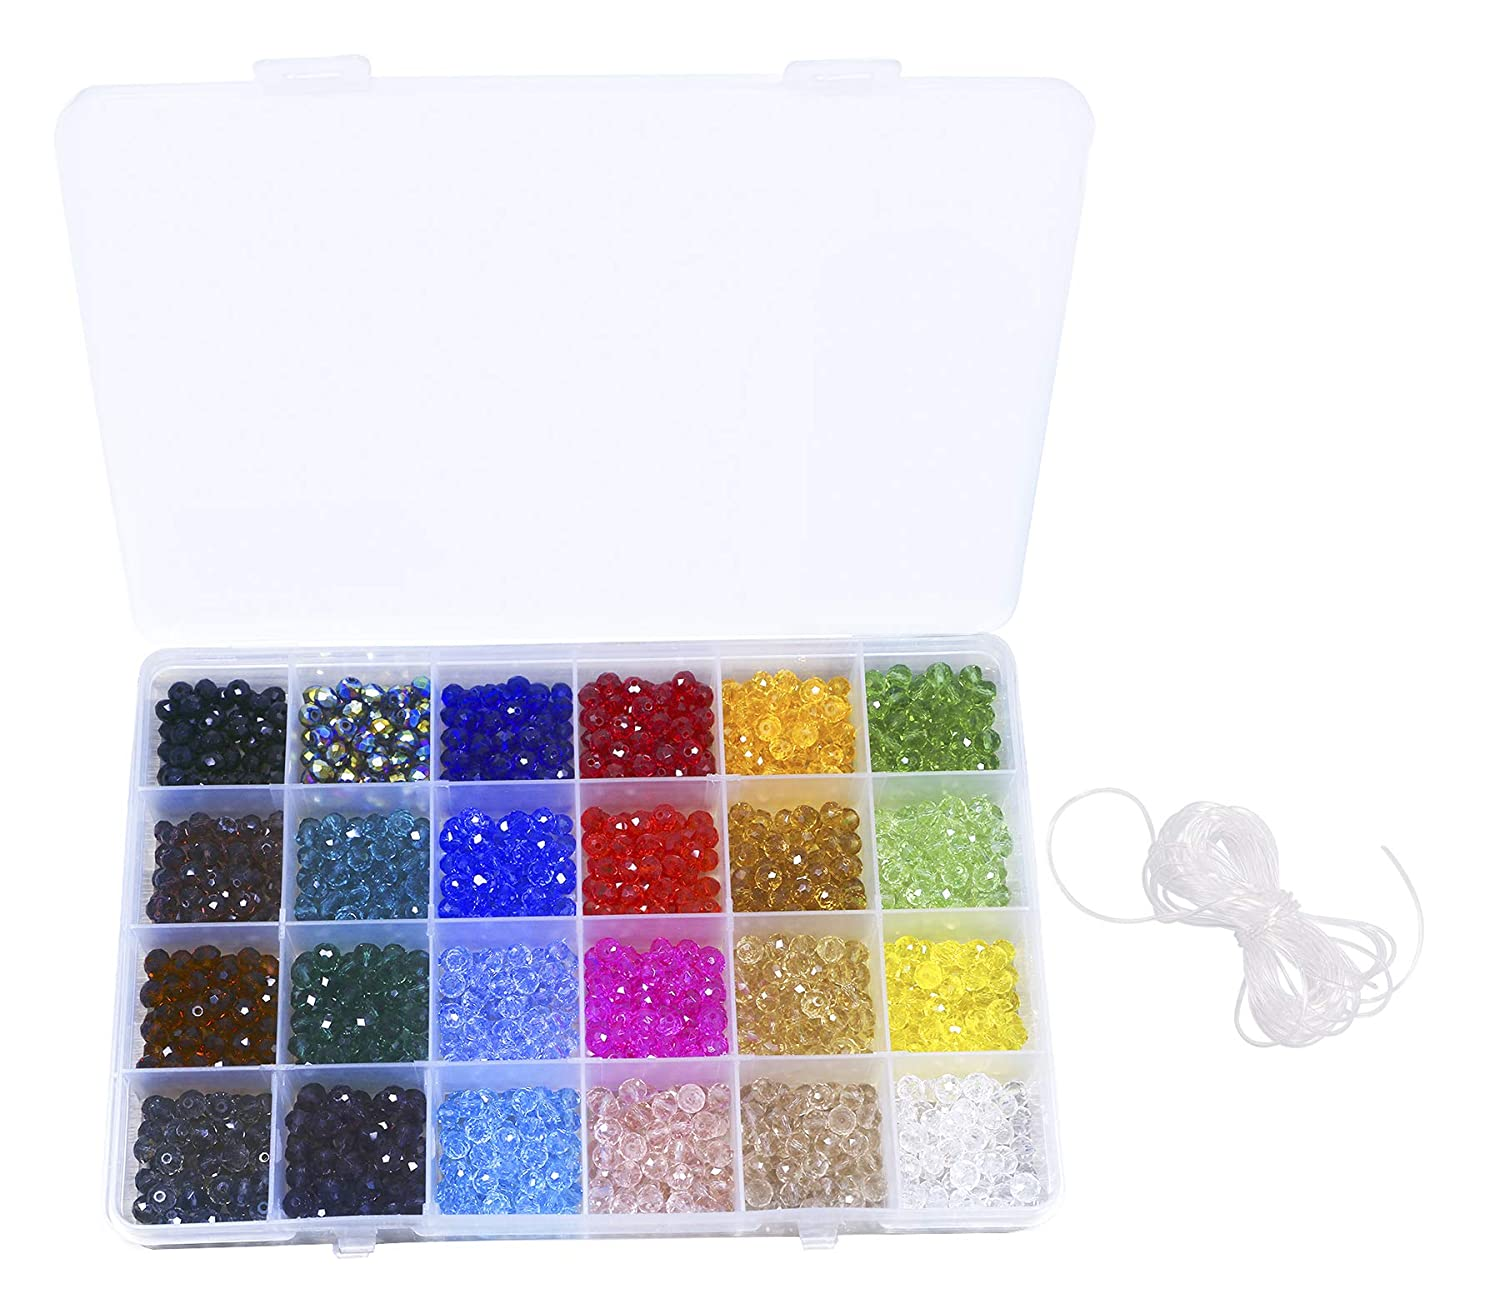 Shapenty 24 Colors 6mm Decorative Hand Briolette Faceted Rondelle Crystal Glass Beads with Hole for DIY Craft Bracelet Necklace Jewelry Making, 1200 Pieces/Box 4336814761